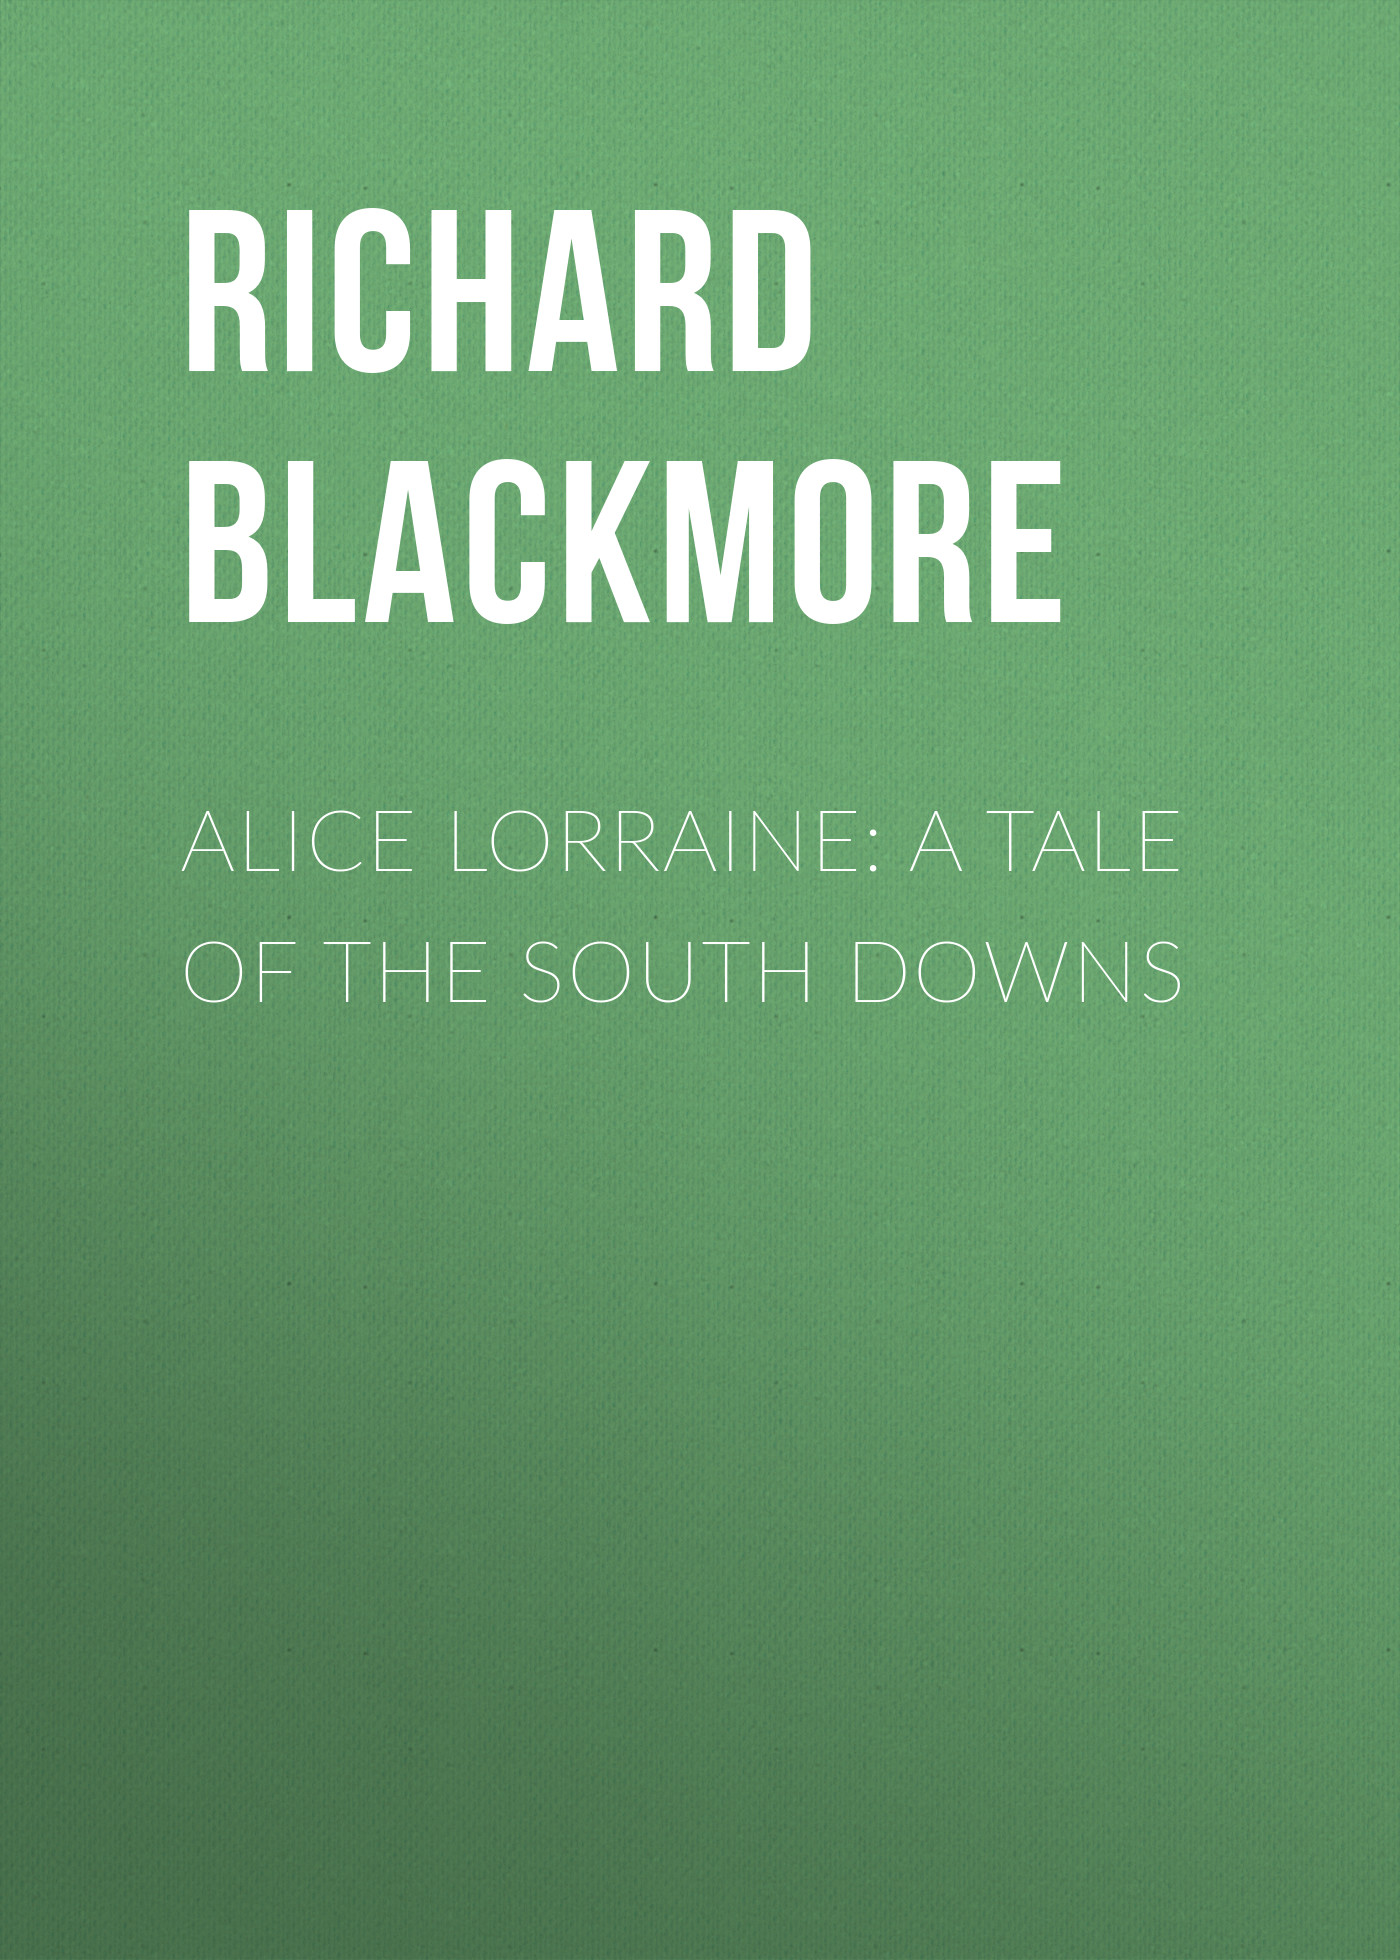 Blackmore Richard Doddridge Alice Lorraine: A Tale of the South Downs alsace lorraine